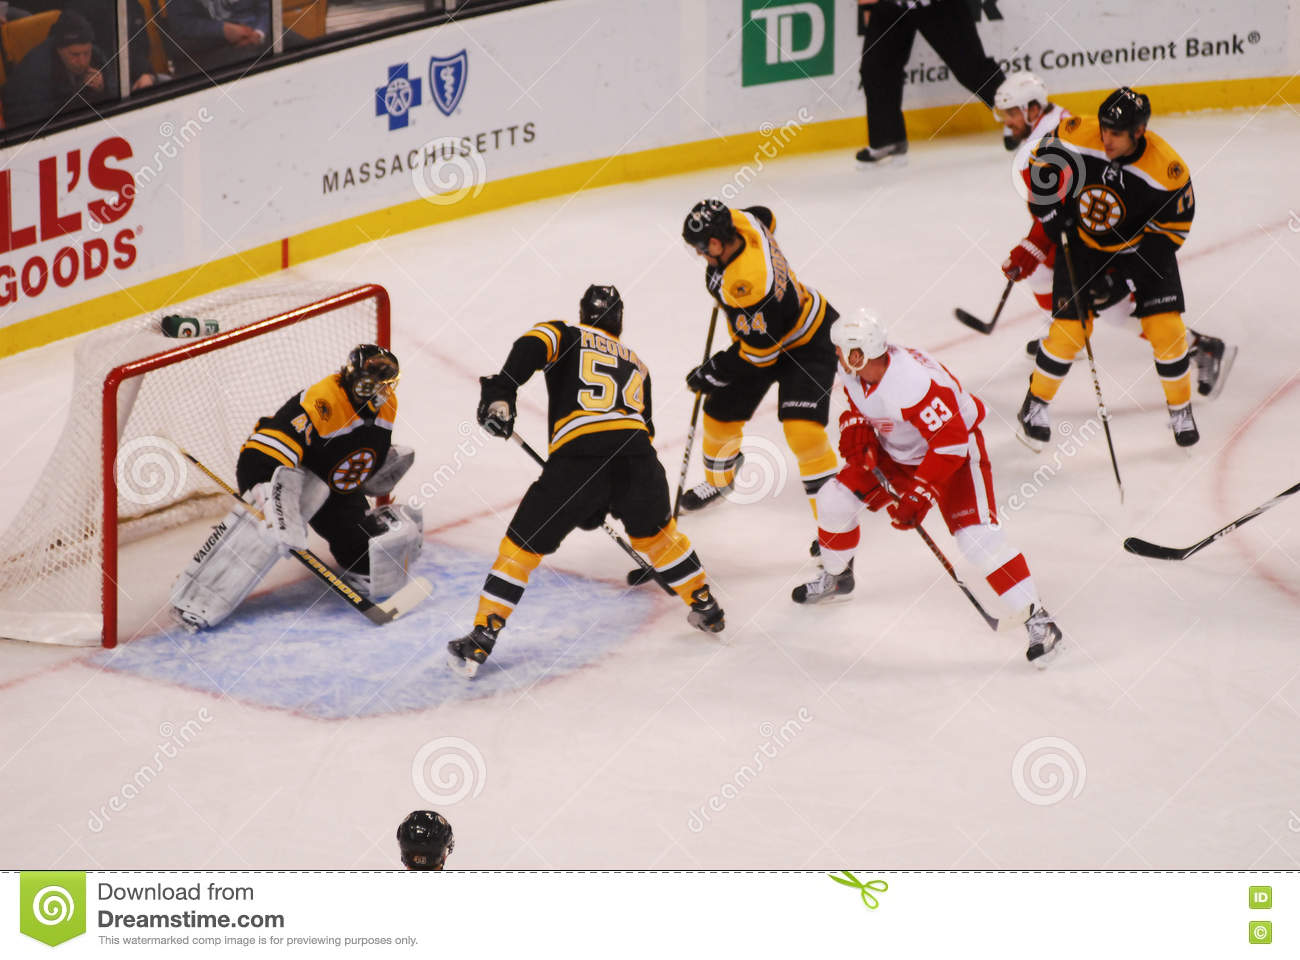 on sale 9a088 24c51 Dennis Seidenberg And Adam McQuaid Editorial Photo - Image ...